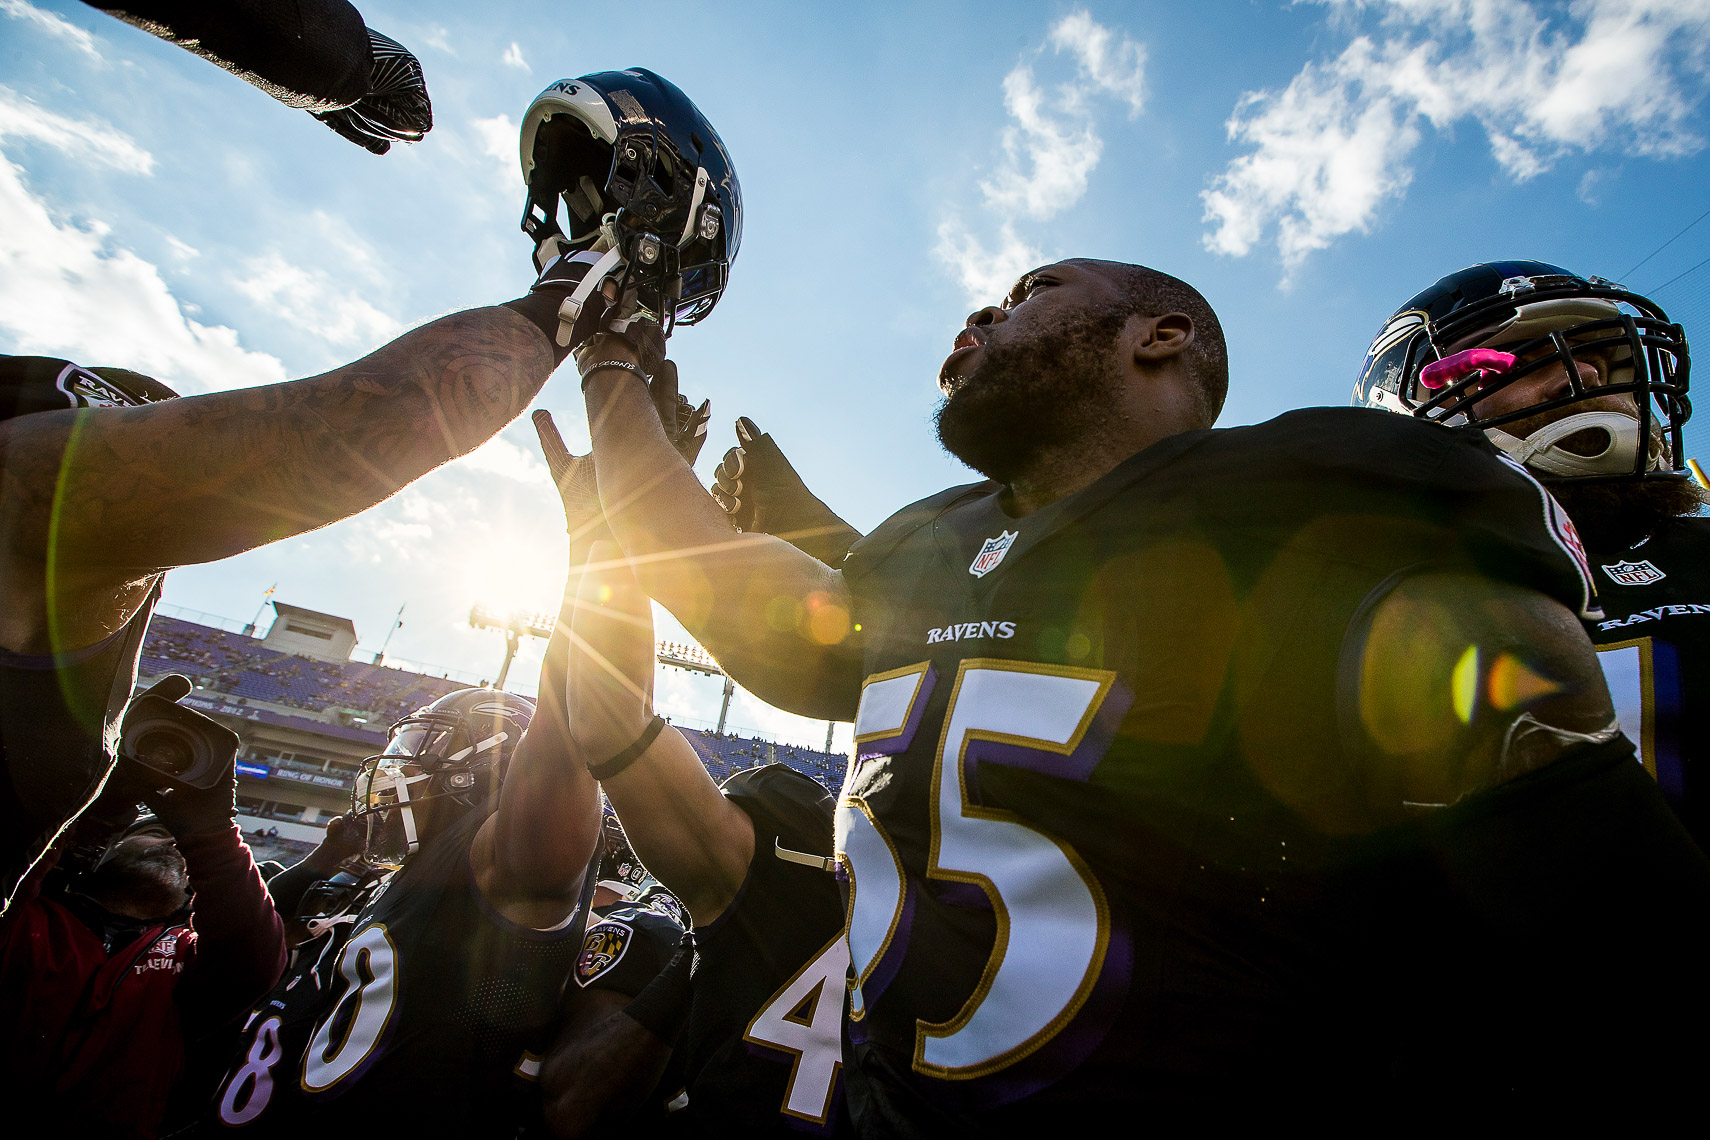 ravens08  NFL Baltimore Ravens photos NFL behind the scenes documentary sports photographer photo of Terrell Suggs